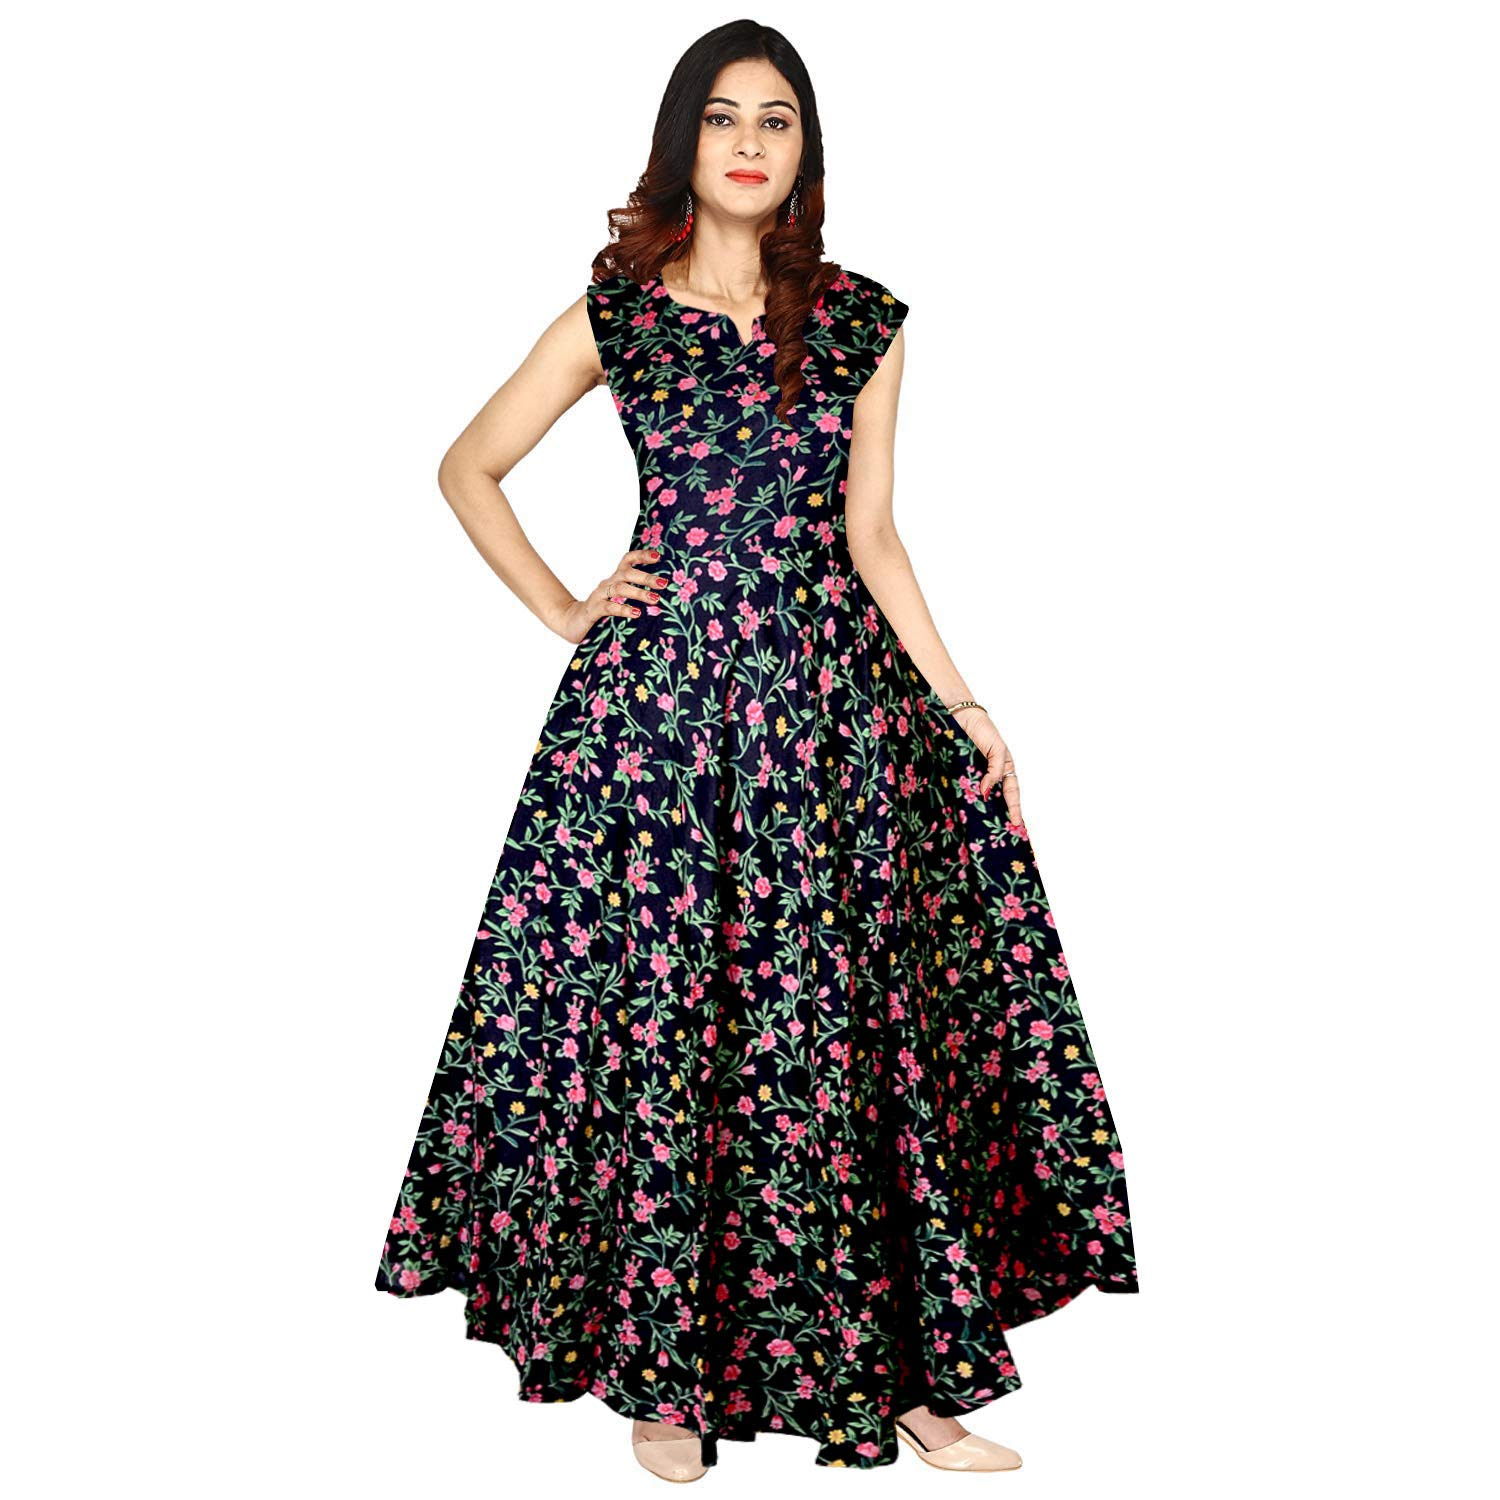 Buy Mudrika Women's Rayon Digital Printed Flare Long Gown Dress  (Multicolour, Free Size) at Amazon.in